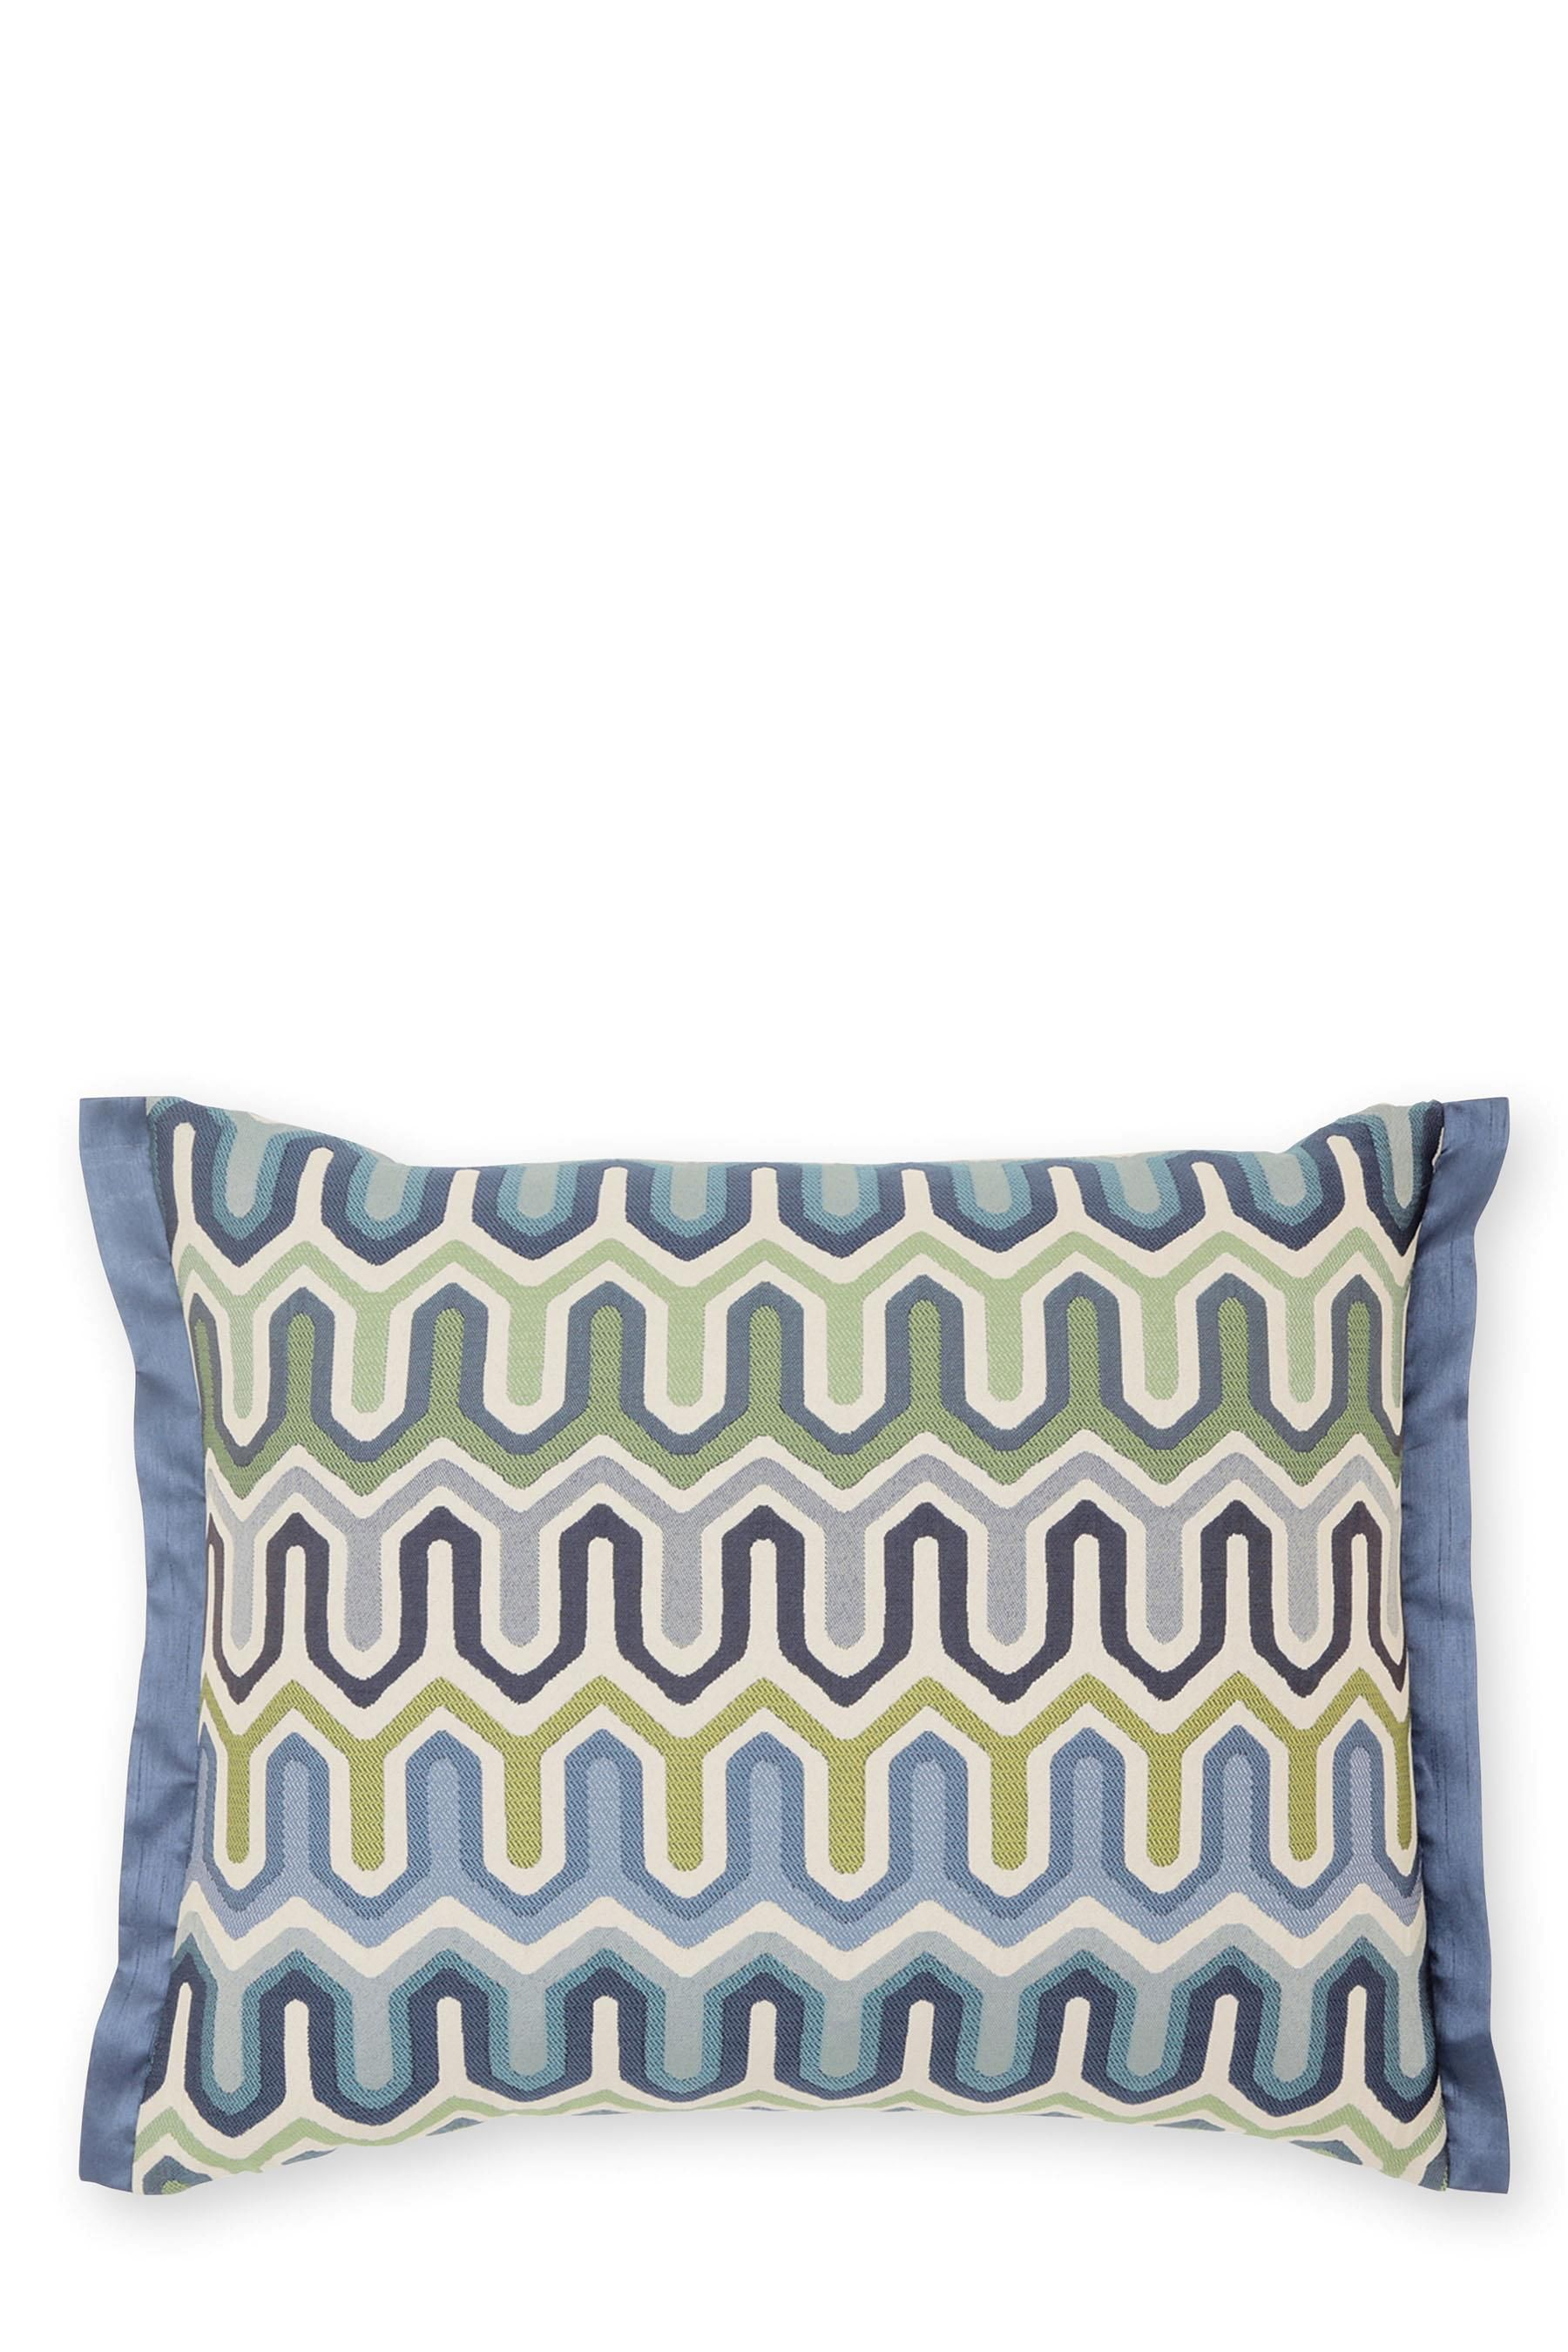 Buy Teal Woven Geo Cushion From The Next Uk Online Shop Cushions